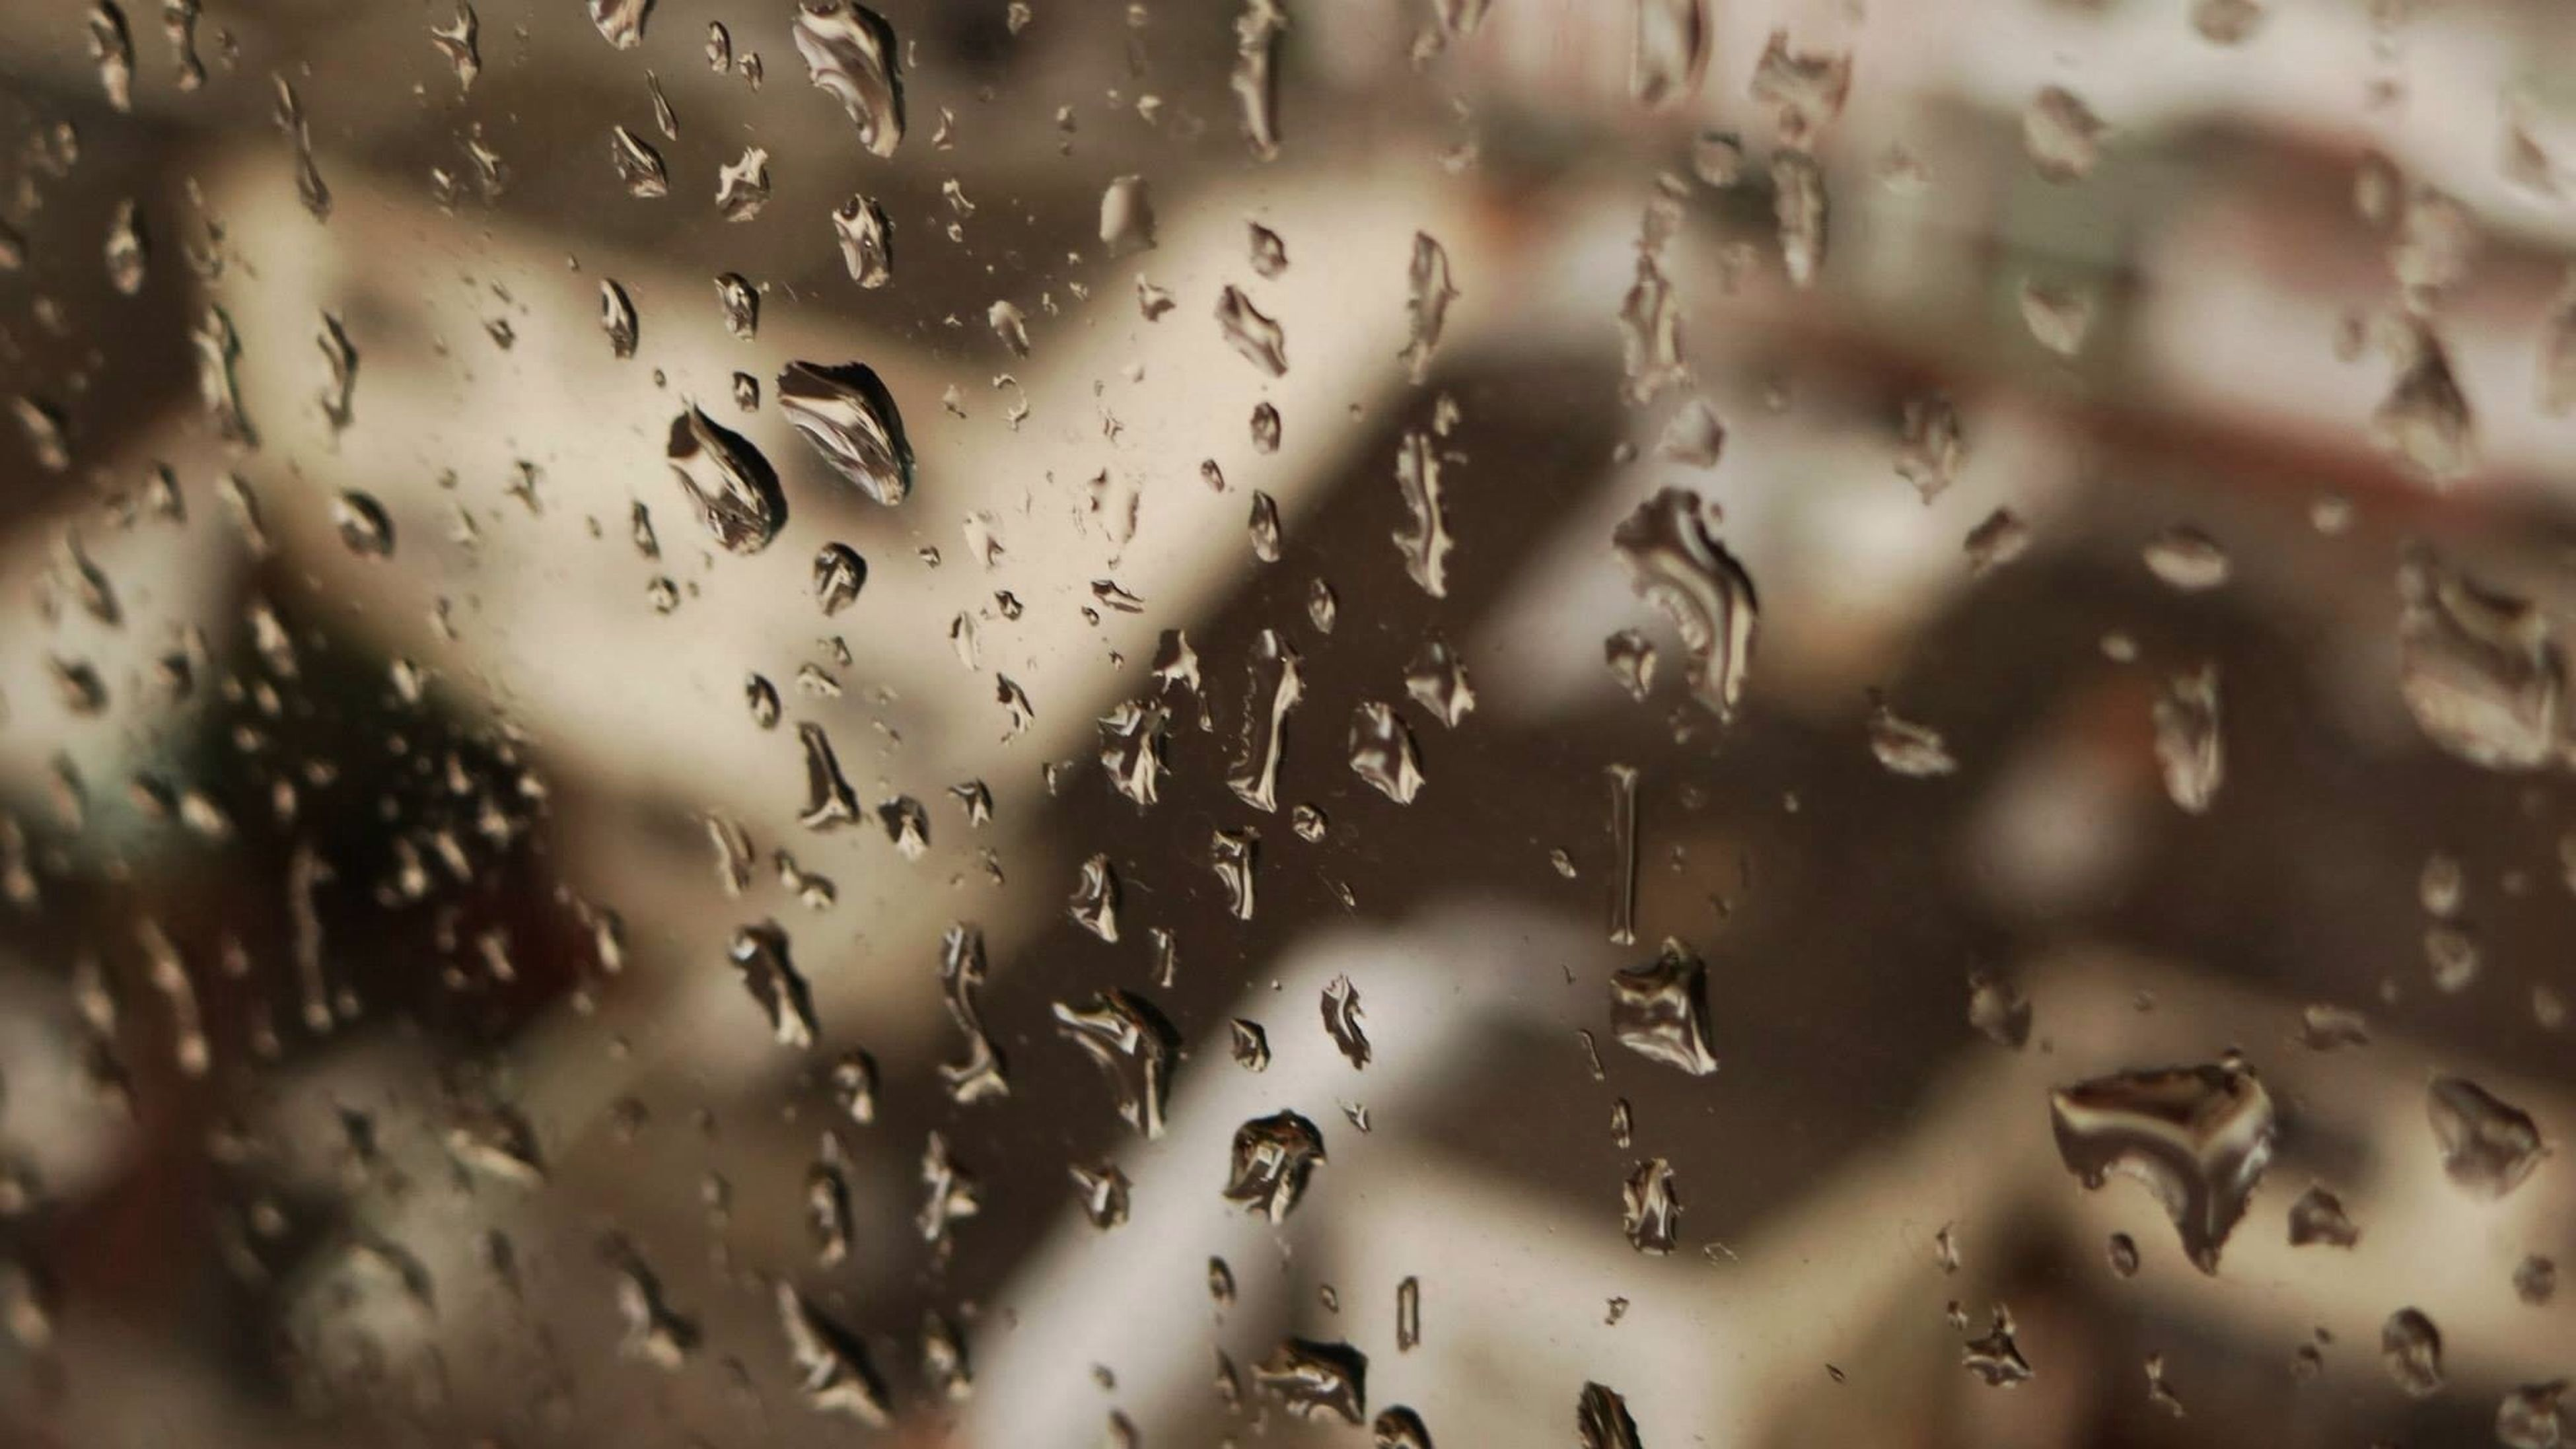 drop, wet, window, full frame, indoors, water, backgrounds, rain, transparent, glass - material, raindrop, focus on foreground, close-up, weather, glass, season, no people, day, droplet, nature